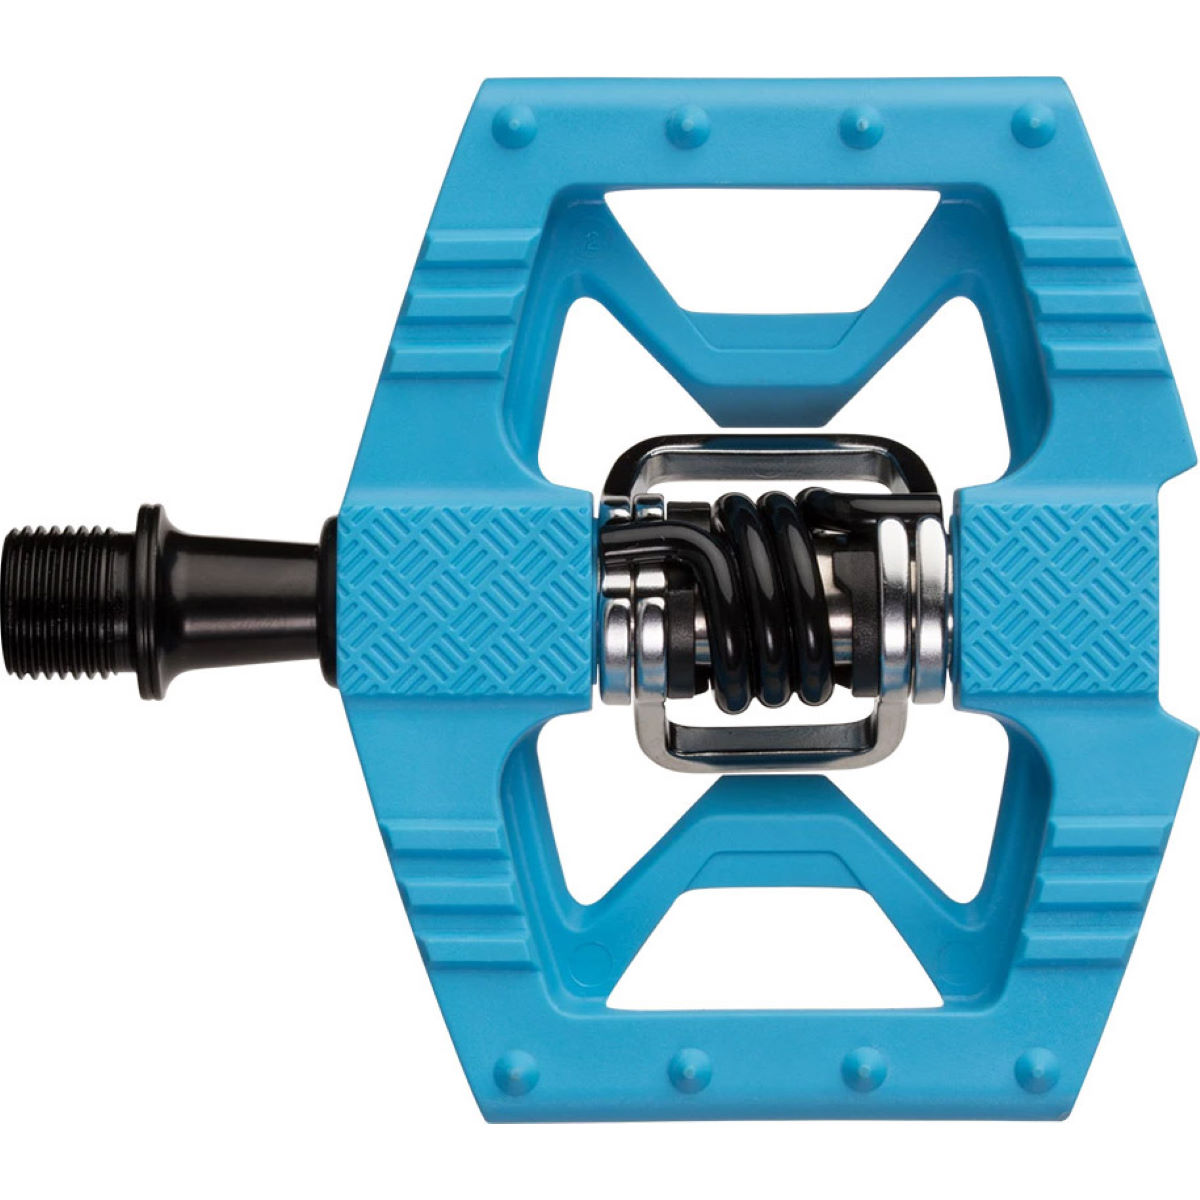 crankbrothers crankbrothers Doubleshot 1 Pedals   Clip-in Pedals